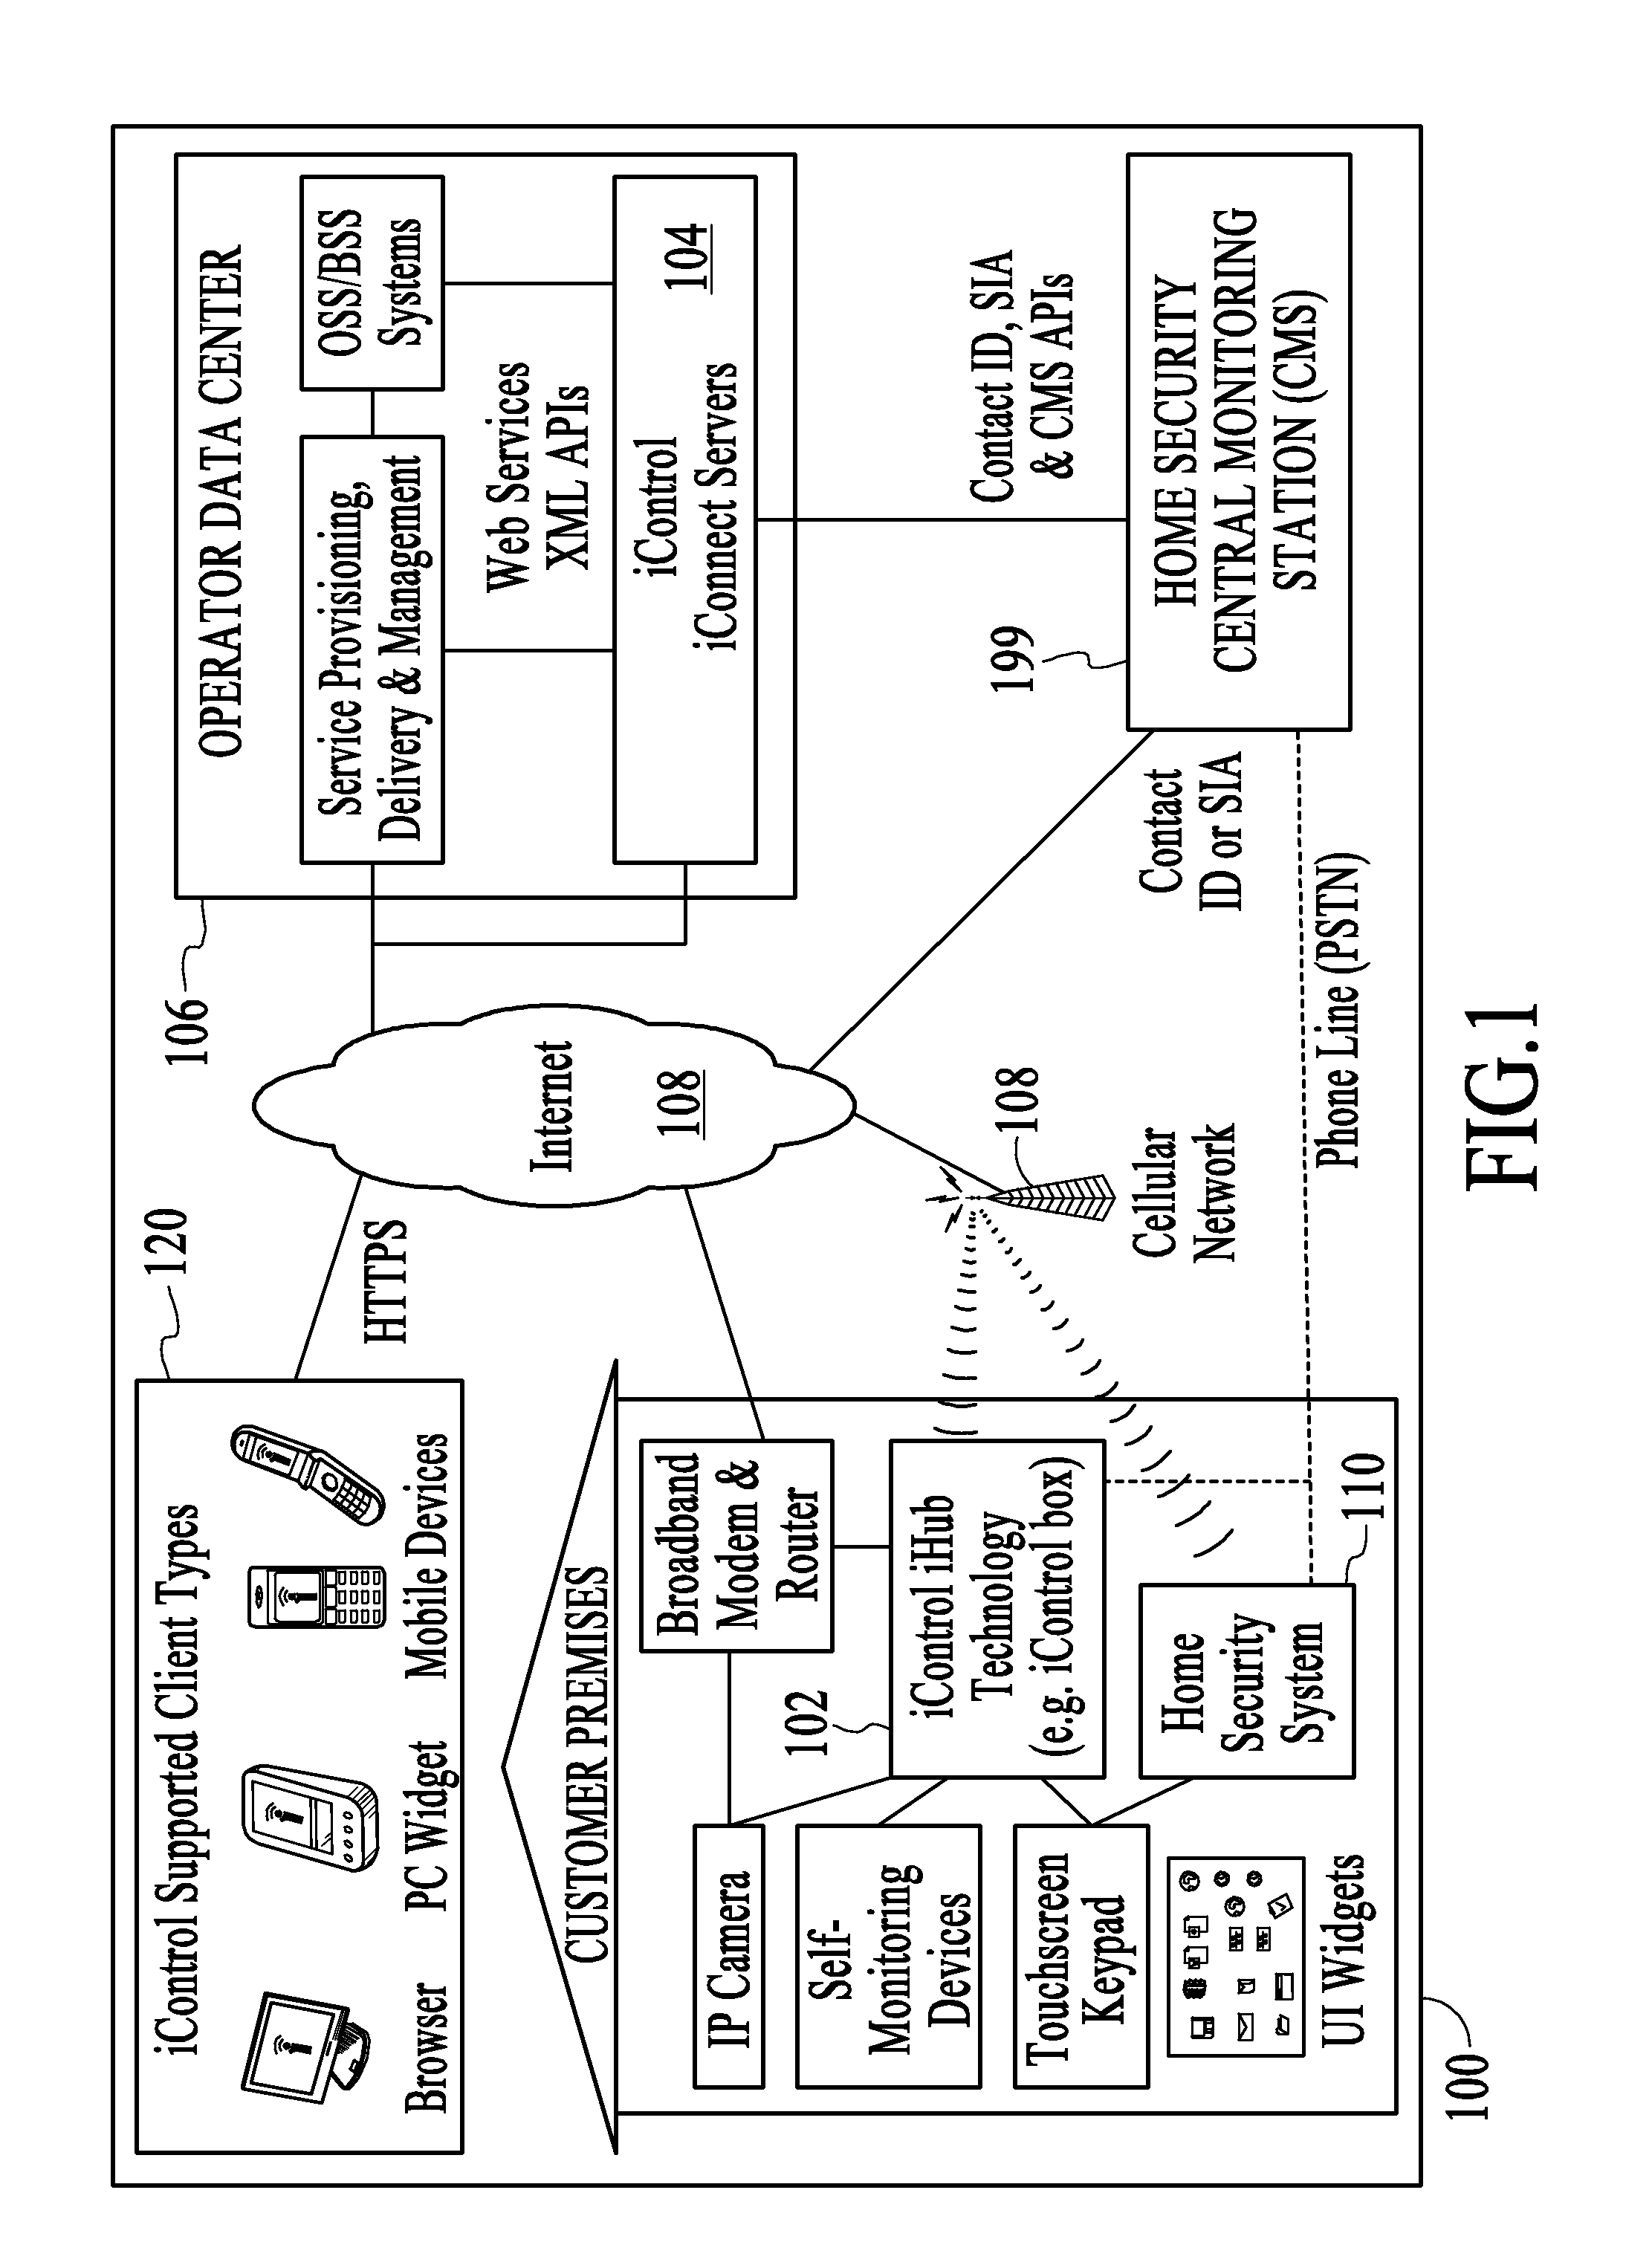 Patent Us 9628440 B2 Wireless Video Security System Diagram Modular For Expandability Images